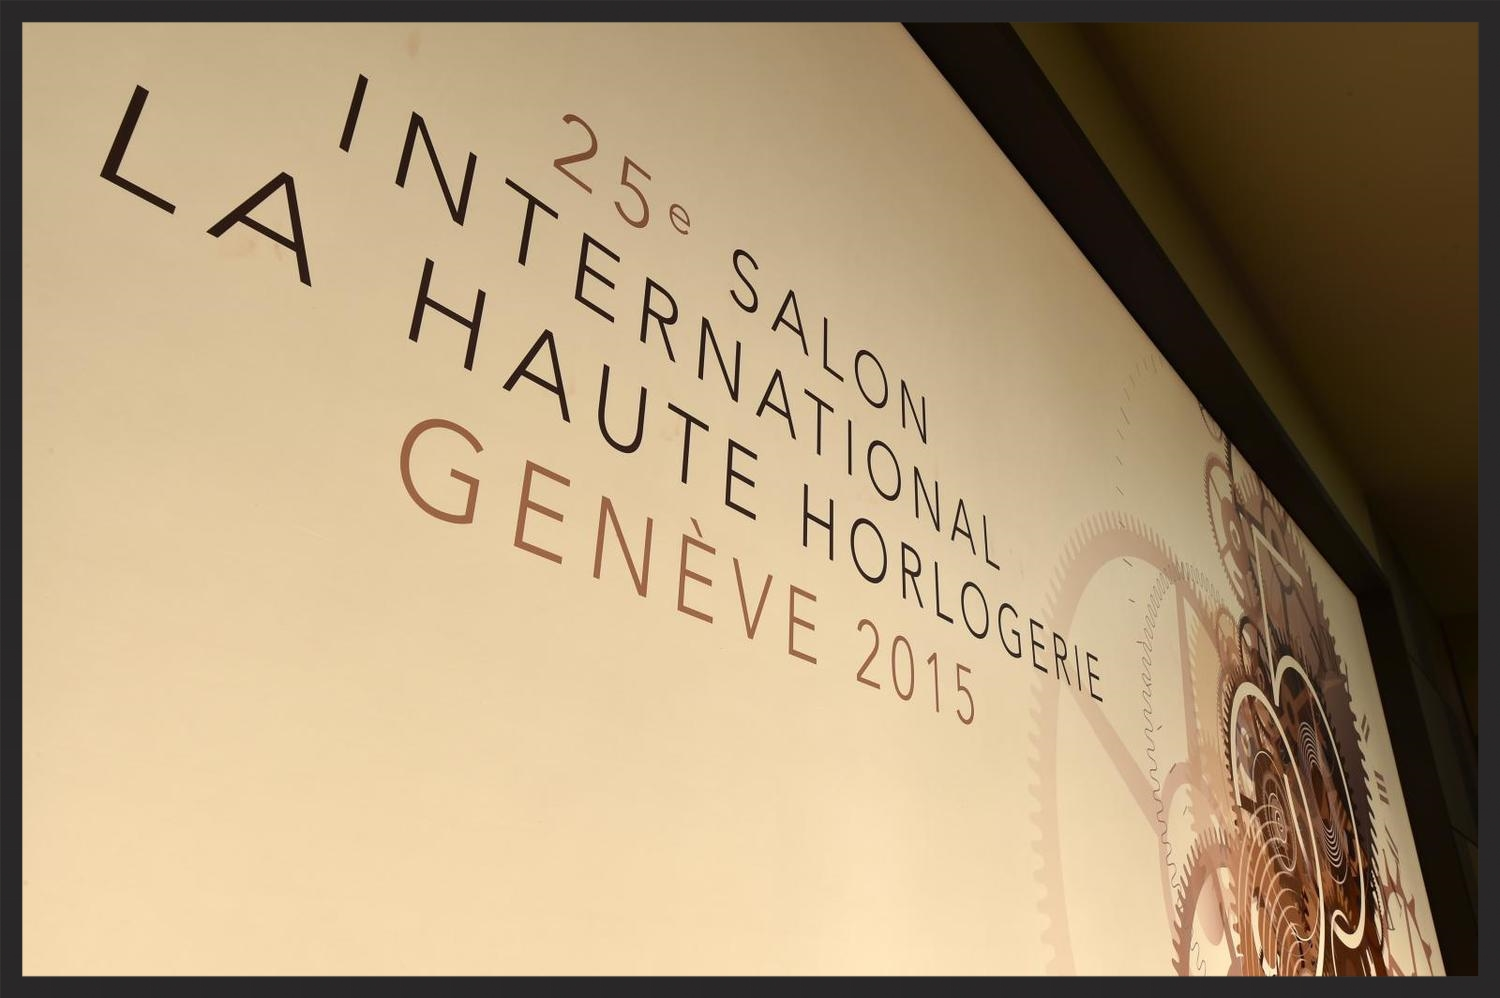 25 years of Haute Horology. Photo courtesy of SIHH.org